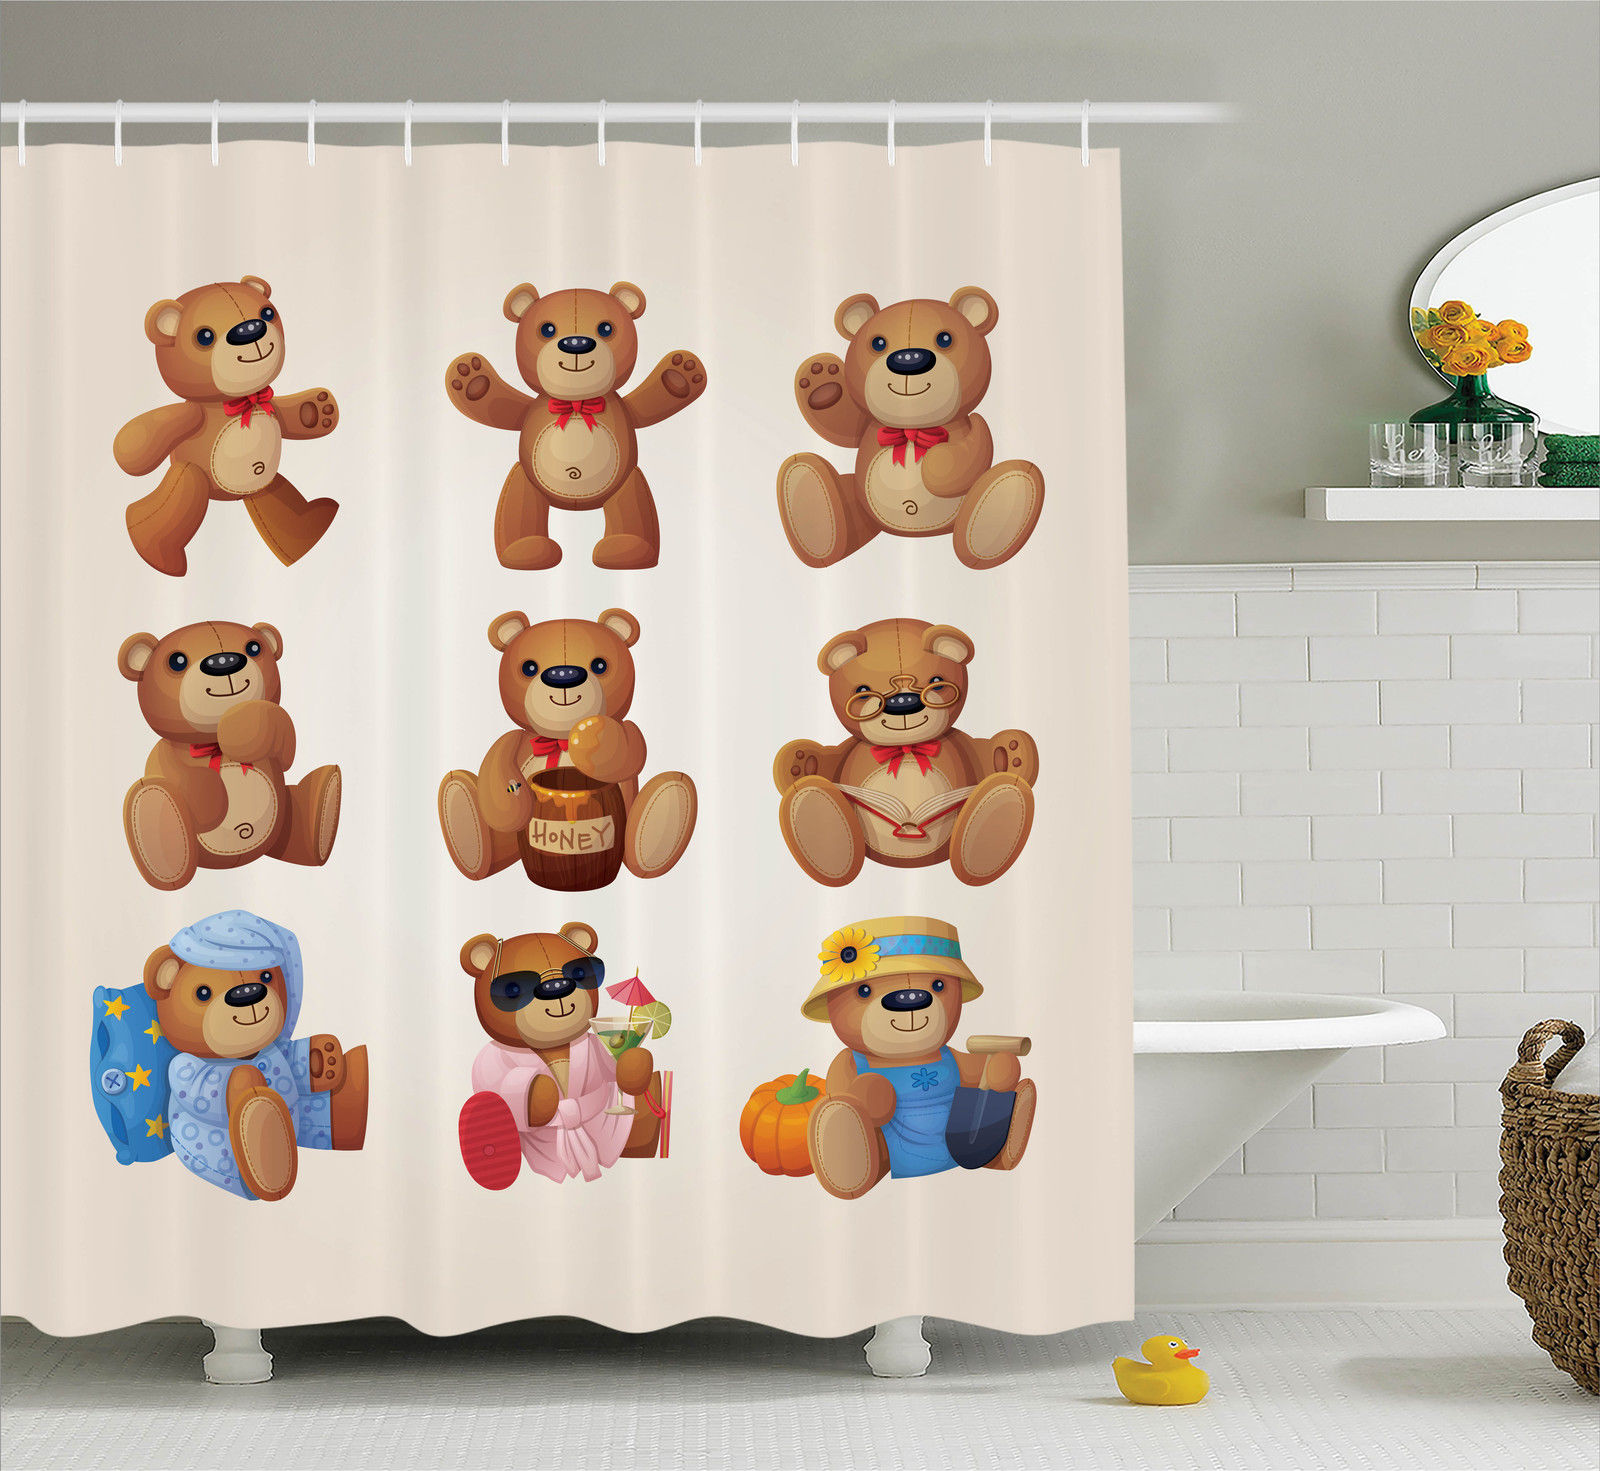 Cartoon Decor Shower Curtain Set, Set Of Cute Happy Teddy Bears With Funny  Different Faces